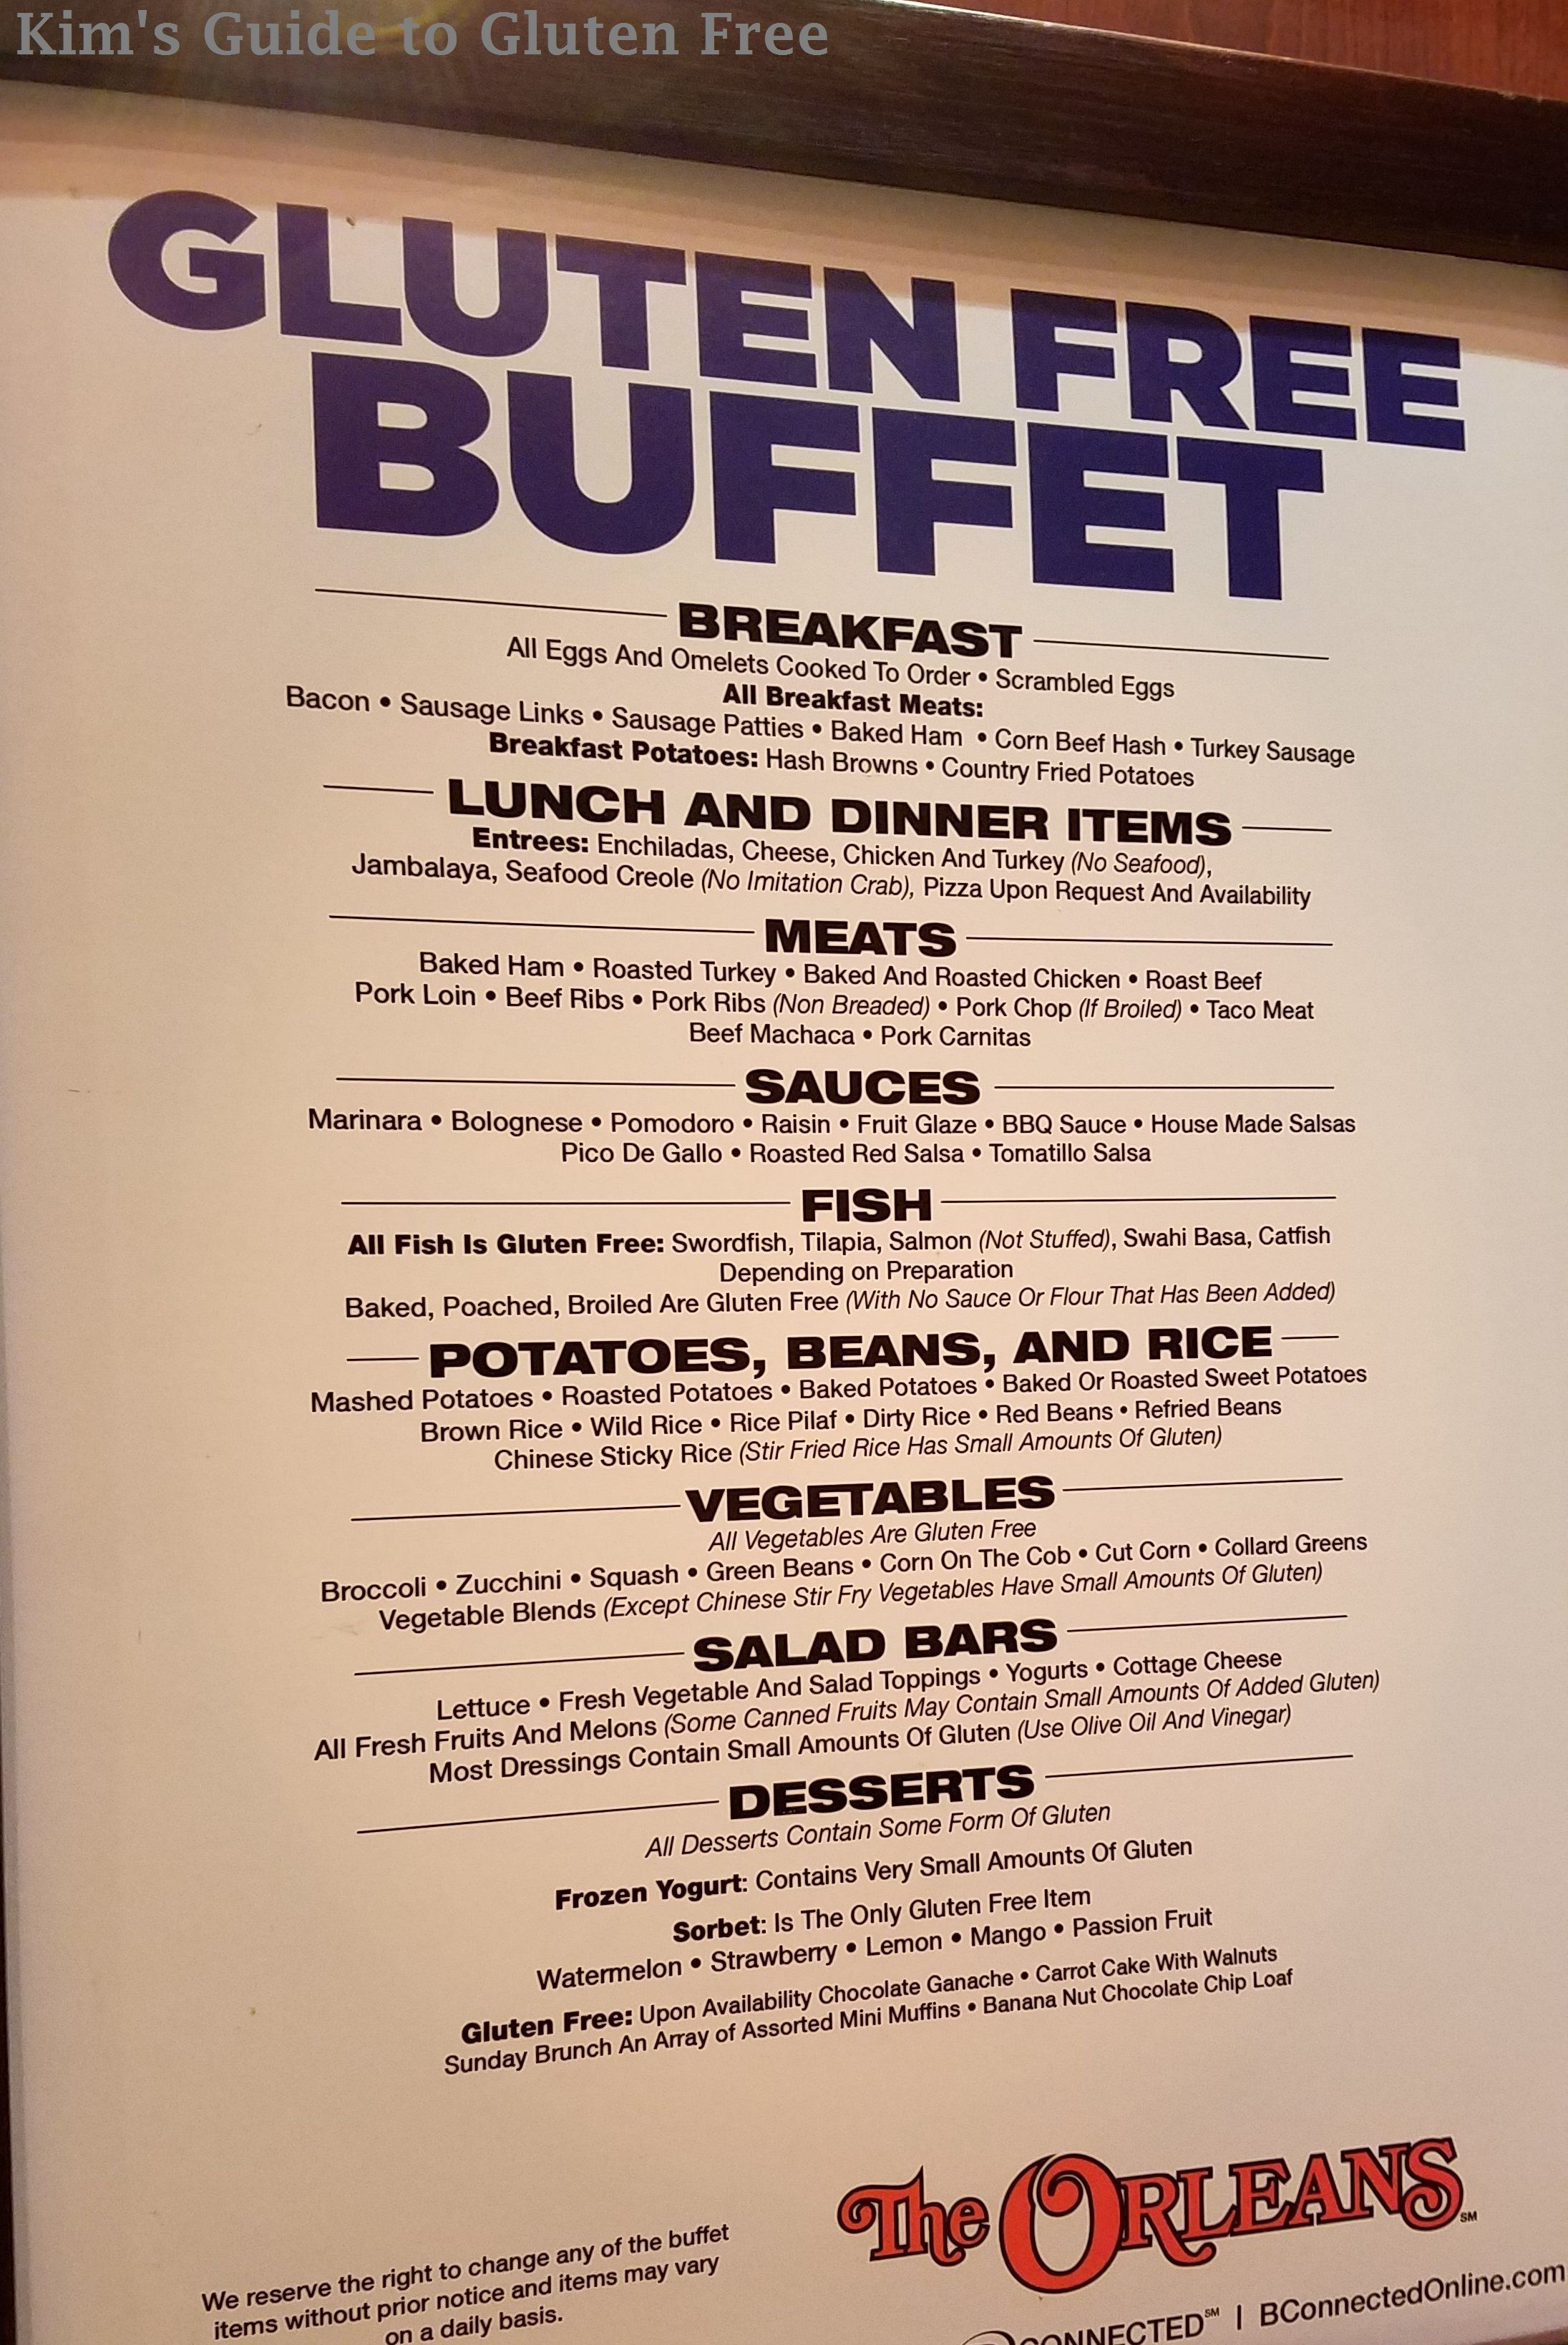 To Las Vegas We Decided Go Some Diffe S And Stopped At The Orleans It Was Meal Time I Wanted Checkout What Gluten Free